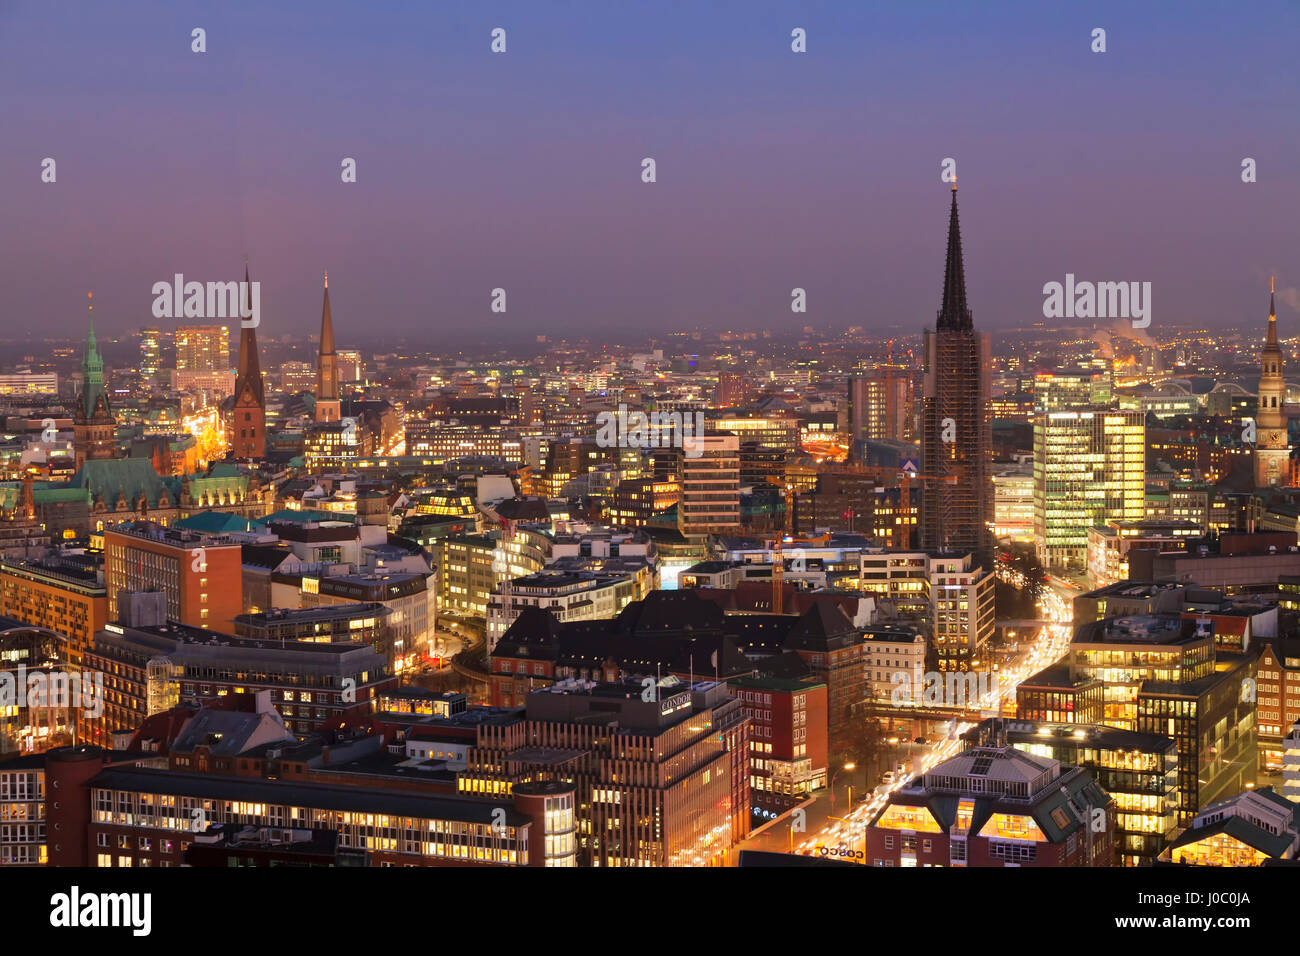 View over the city center at night, Hamburg, Hanseatic City, Germany - Stock Image